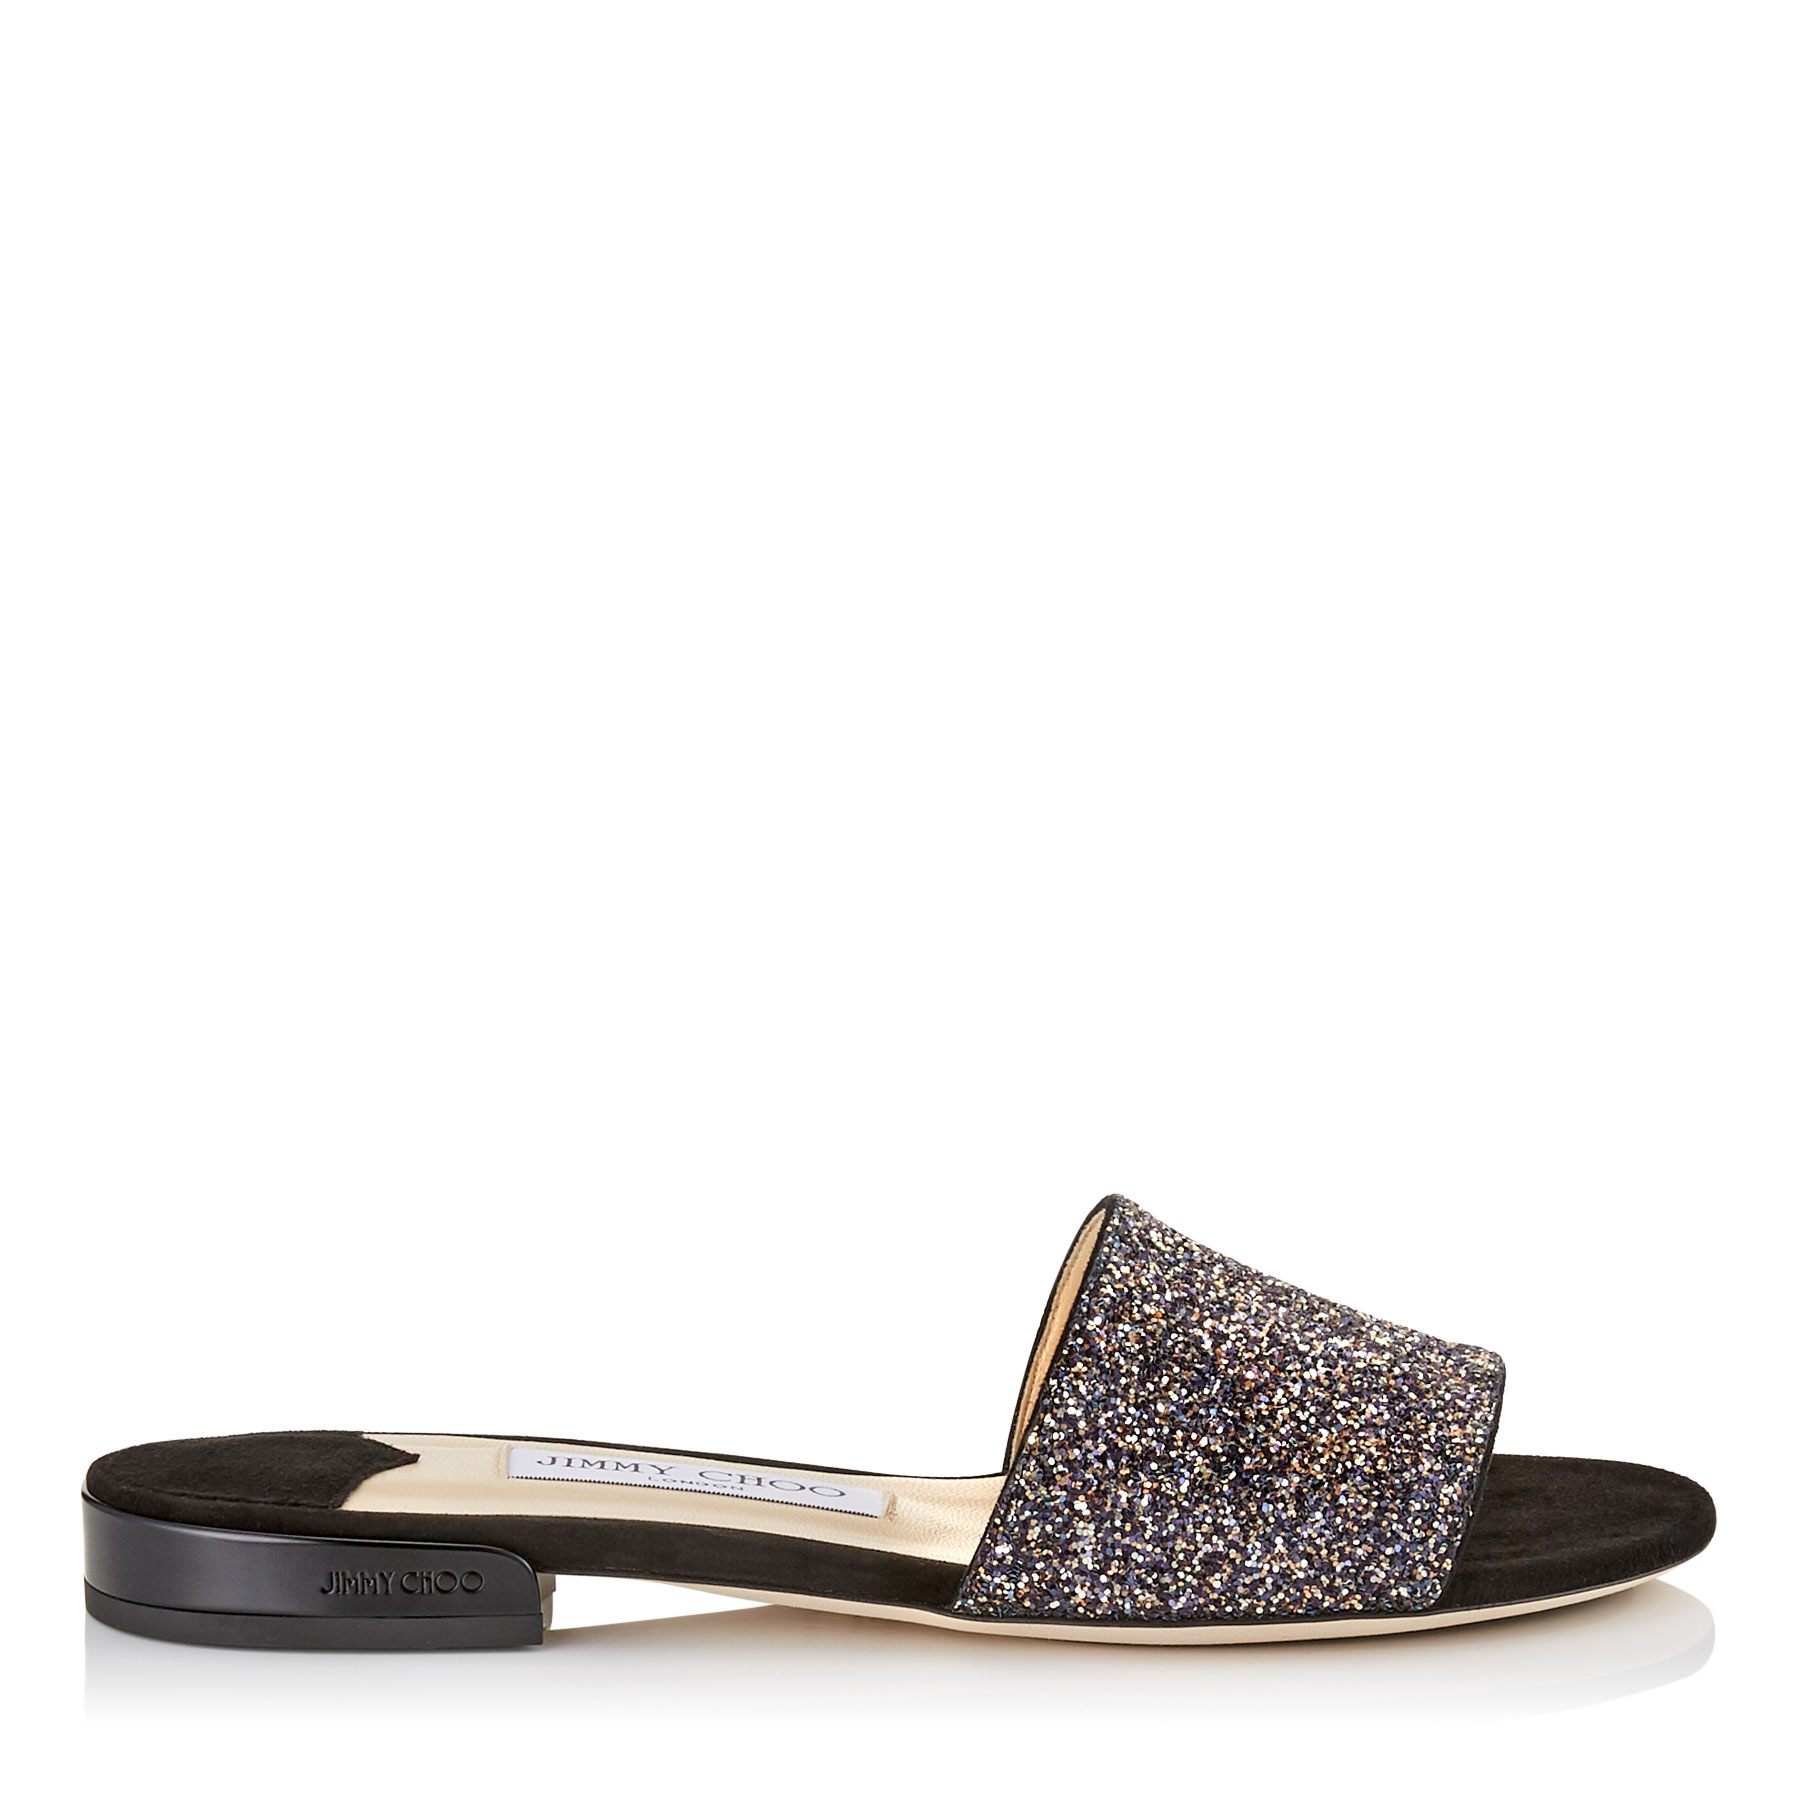 JONI FLAT Twilight Glitzy Glitter Fabric Slides by Jimmy Choo